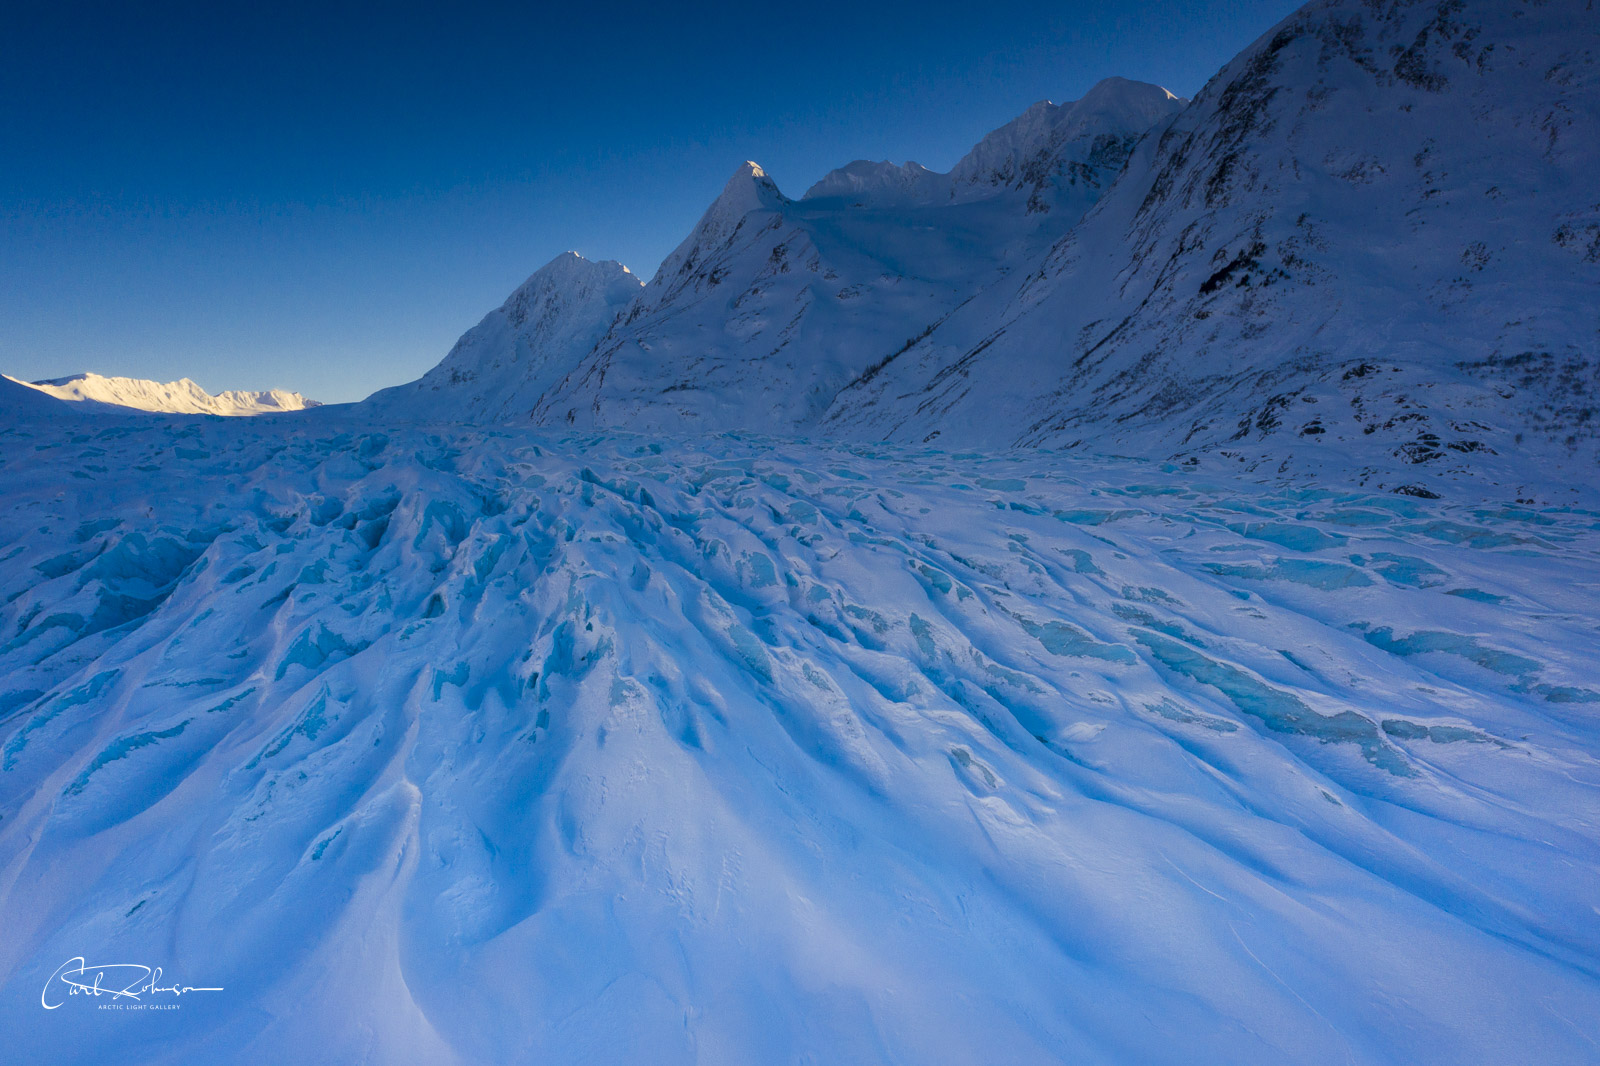 The Spencer Glacier takes on a deep, blue hue in the shade as the day's light drops low on the horizon.